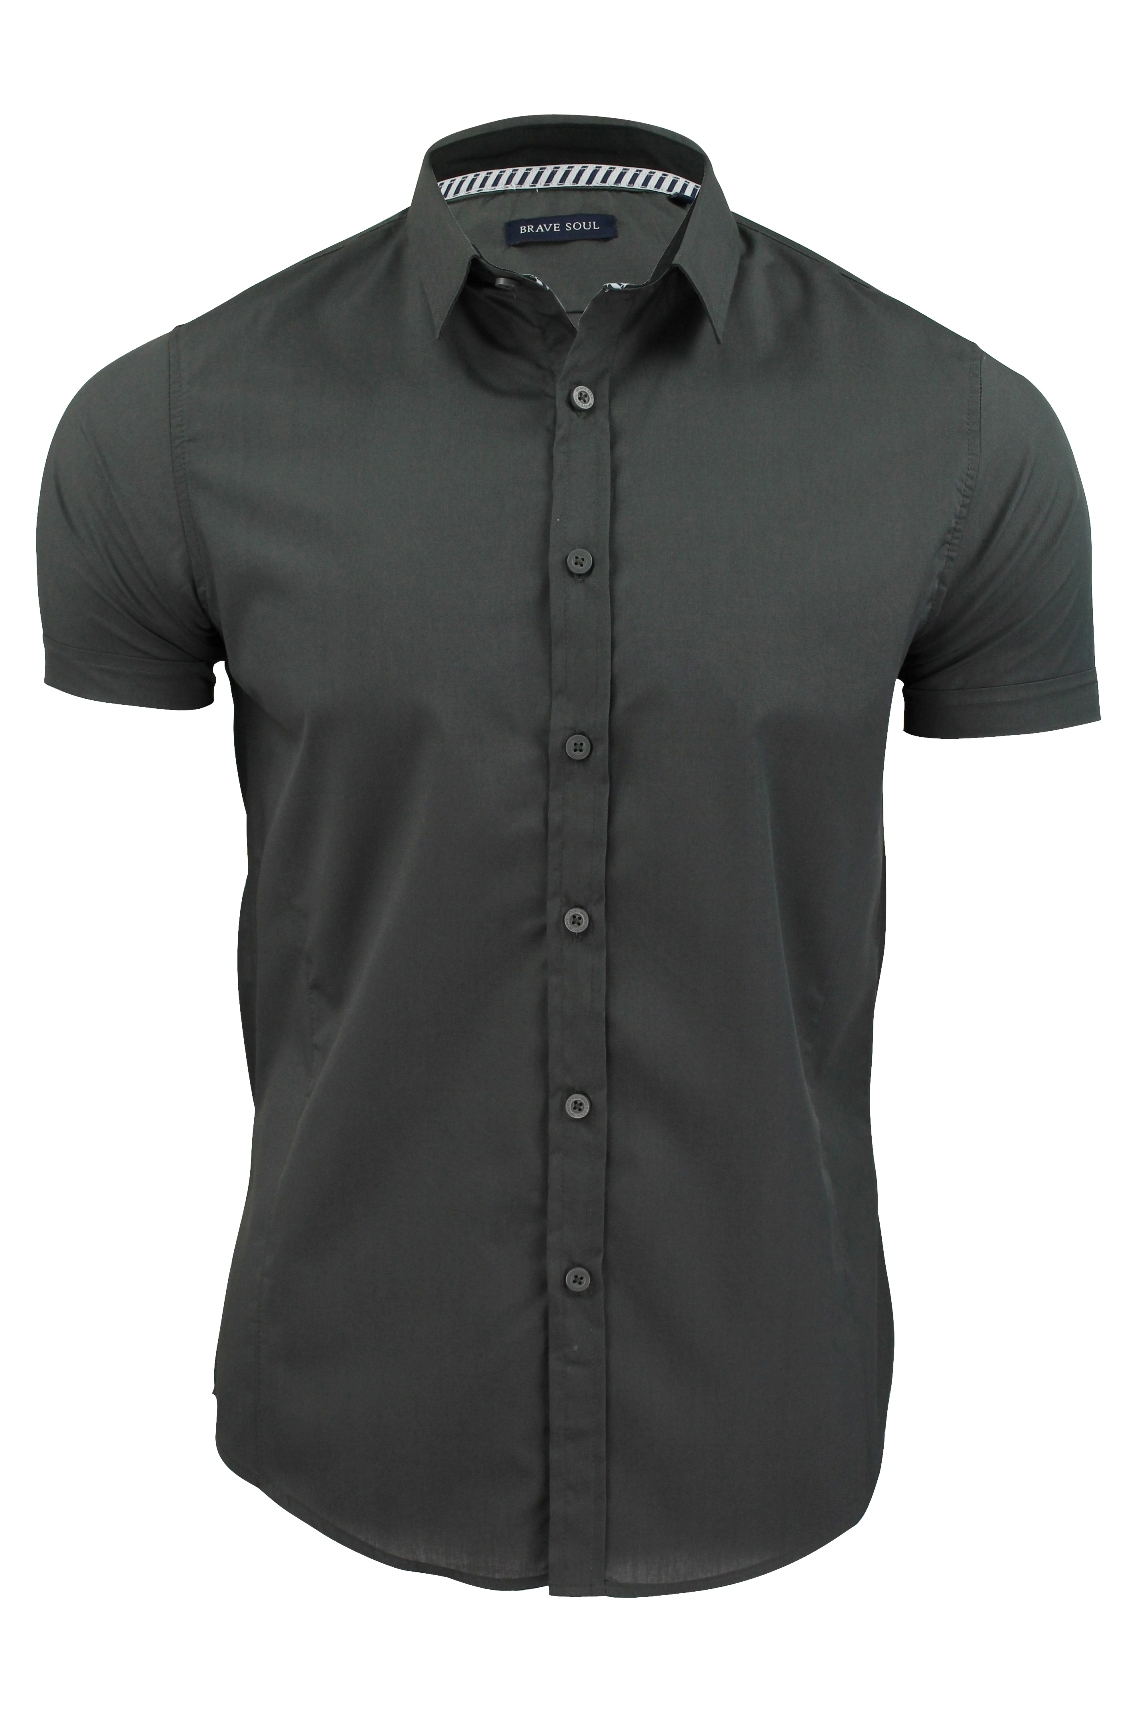 Mens-Plain-Shirt-by-Brave-Soul-Slim-Fit-Short-Sleeved